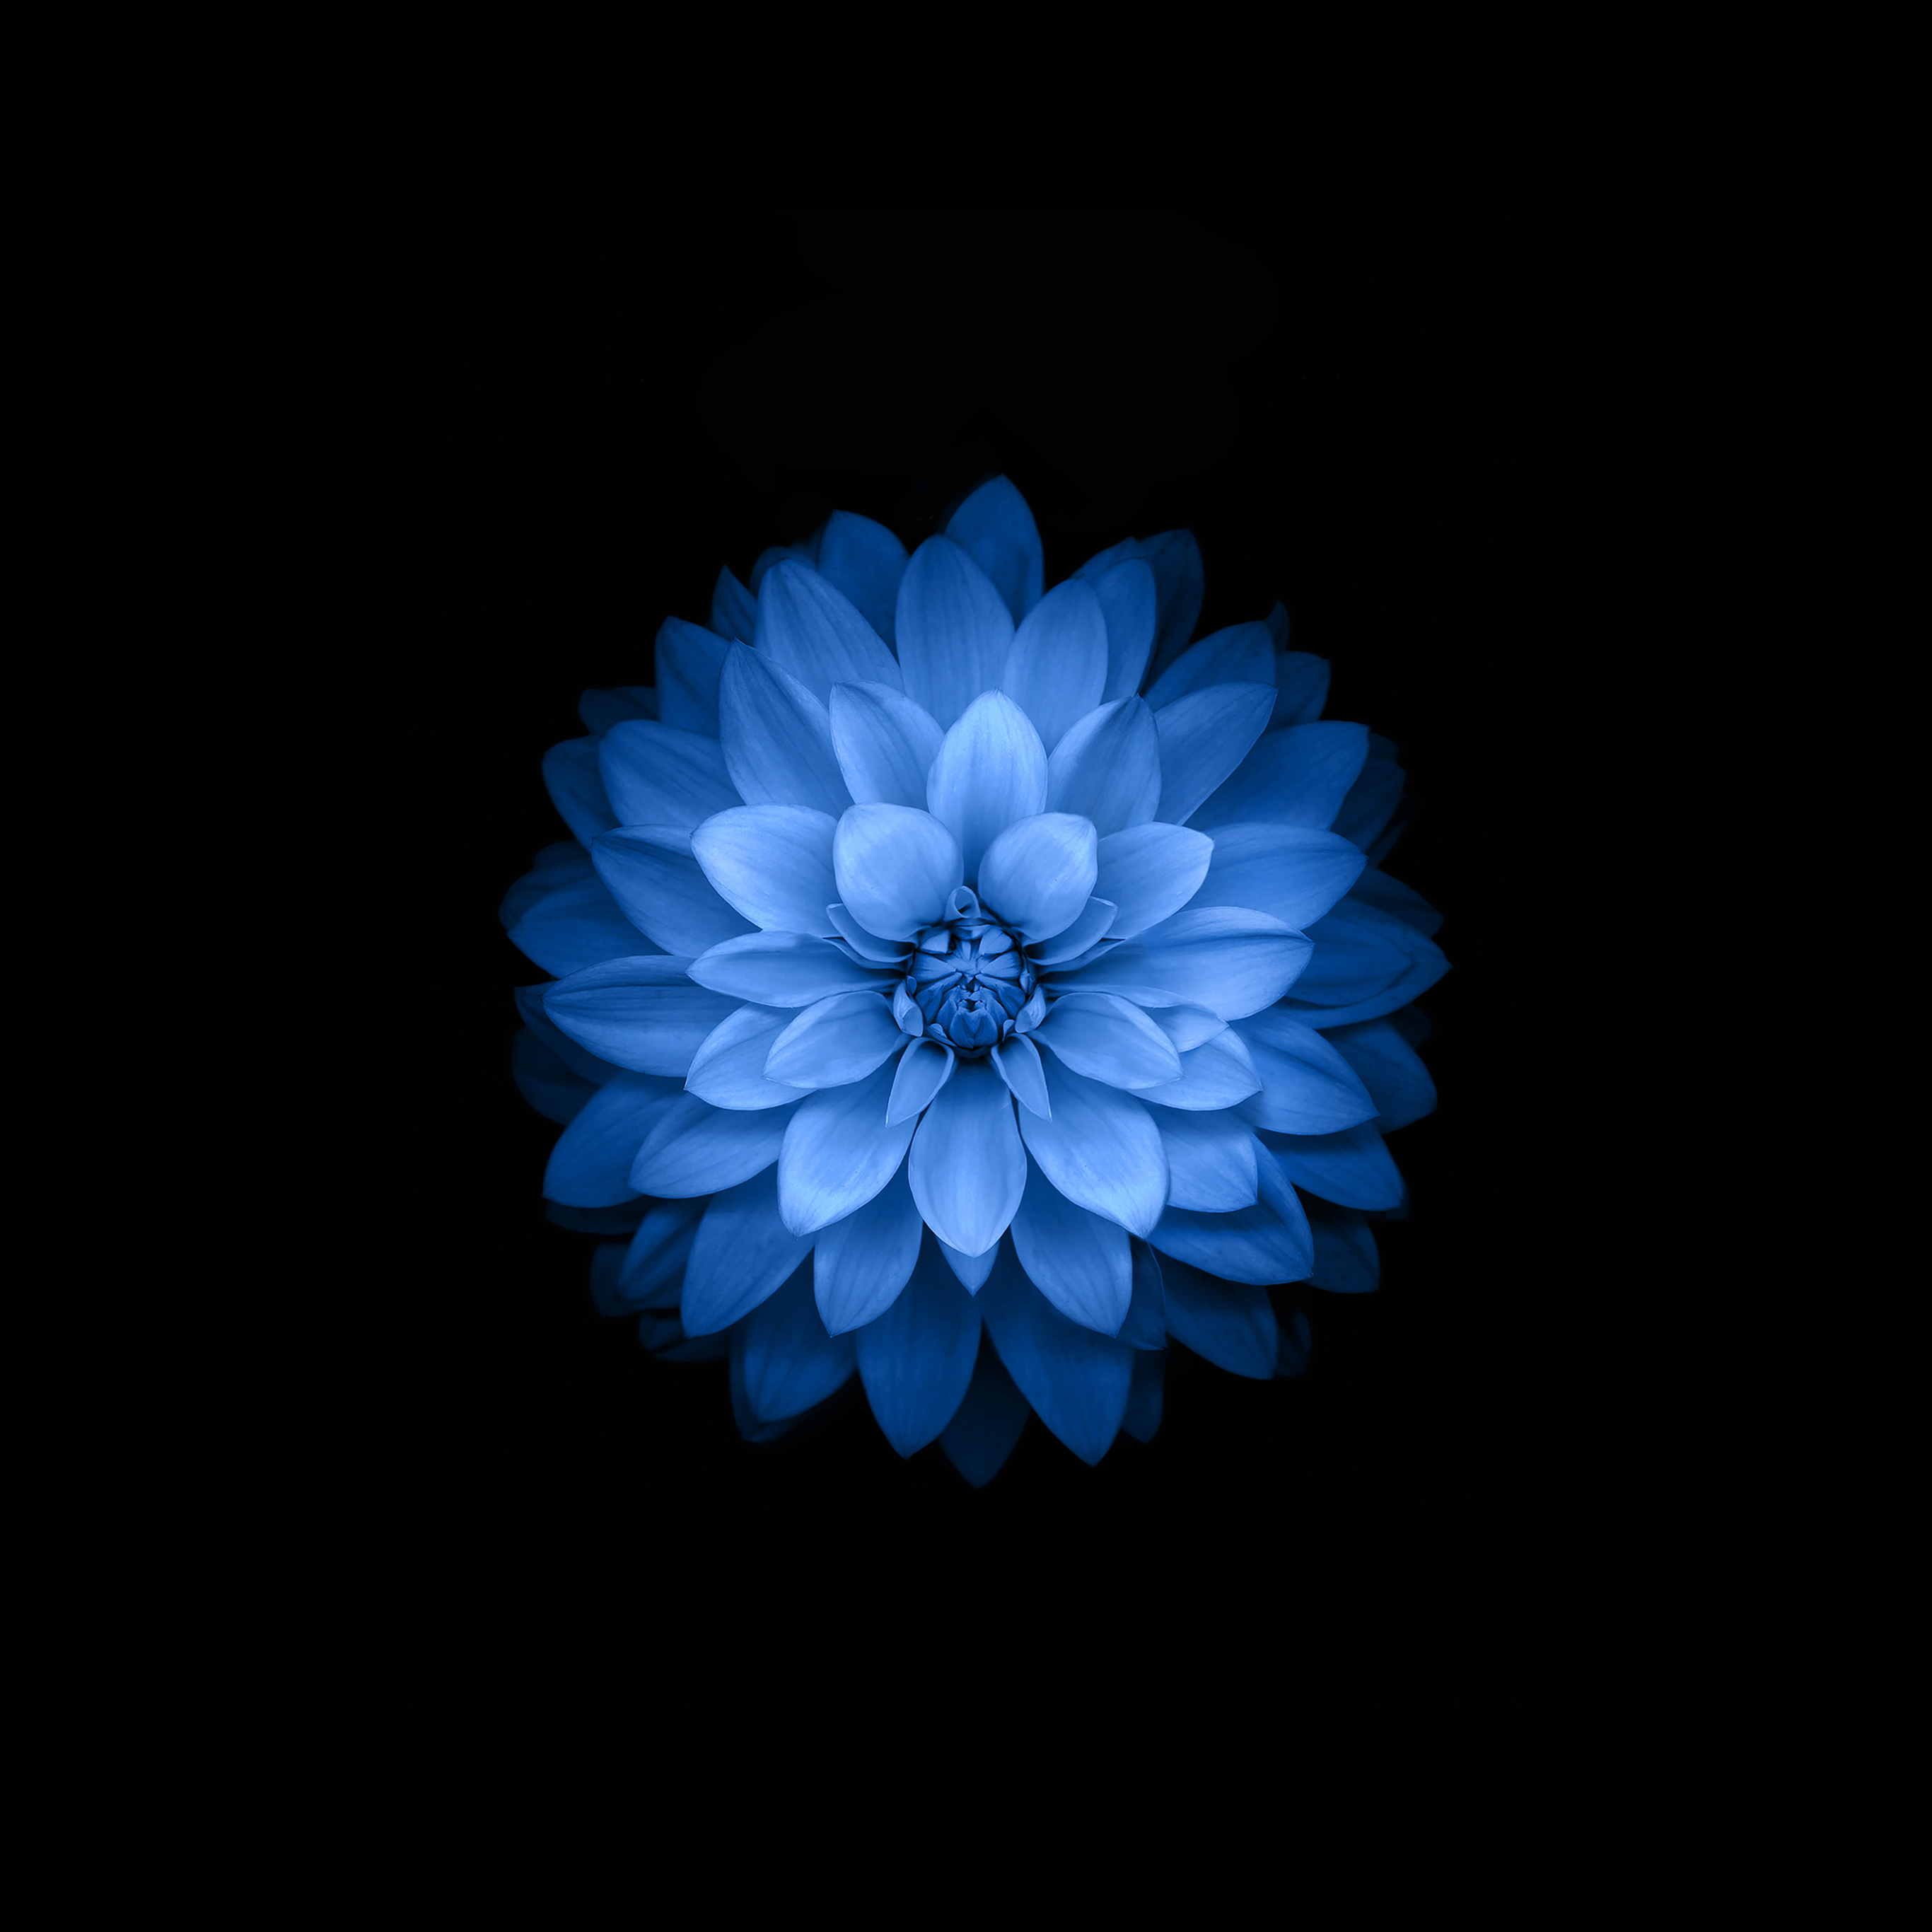 Ac99 Wallpaper Apple Blue Lotus Iphone6 Plus Ios8 Flower Wallpaper